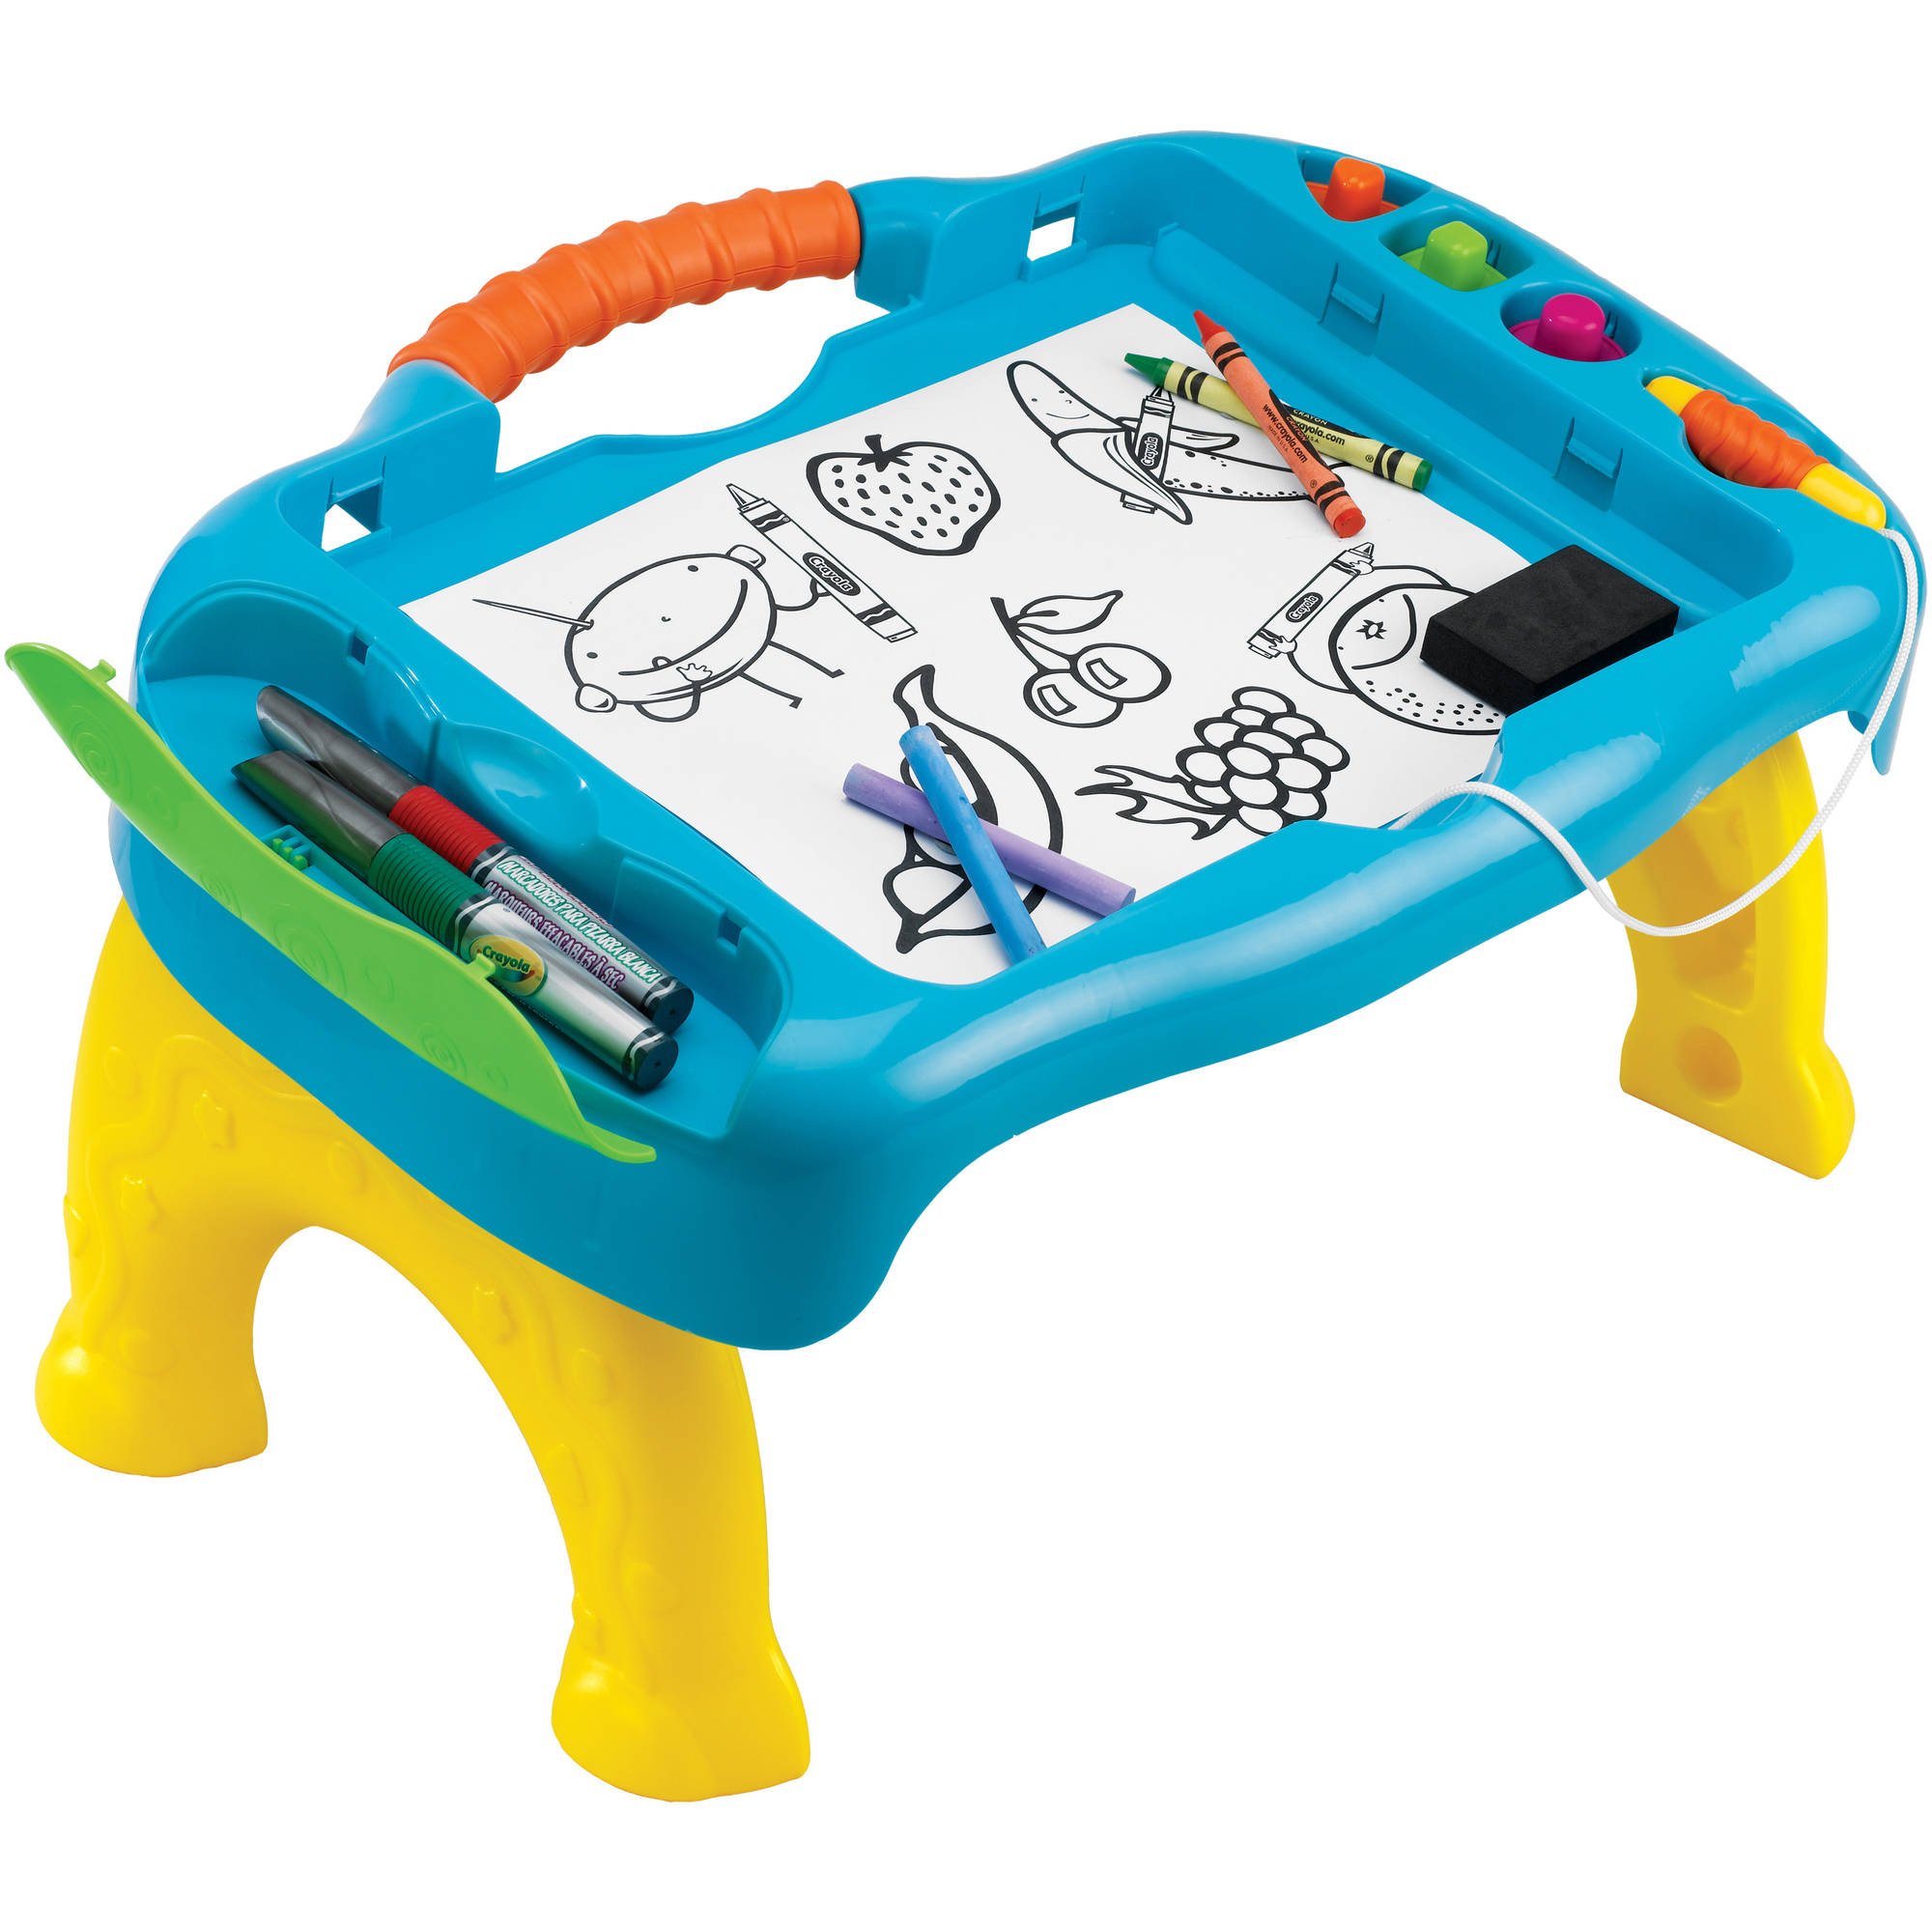 Worksheet Crayola Draw Online crayola sit n draw travel table walmart com